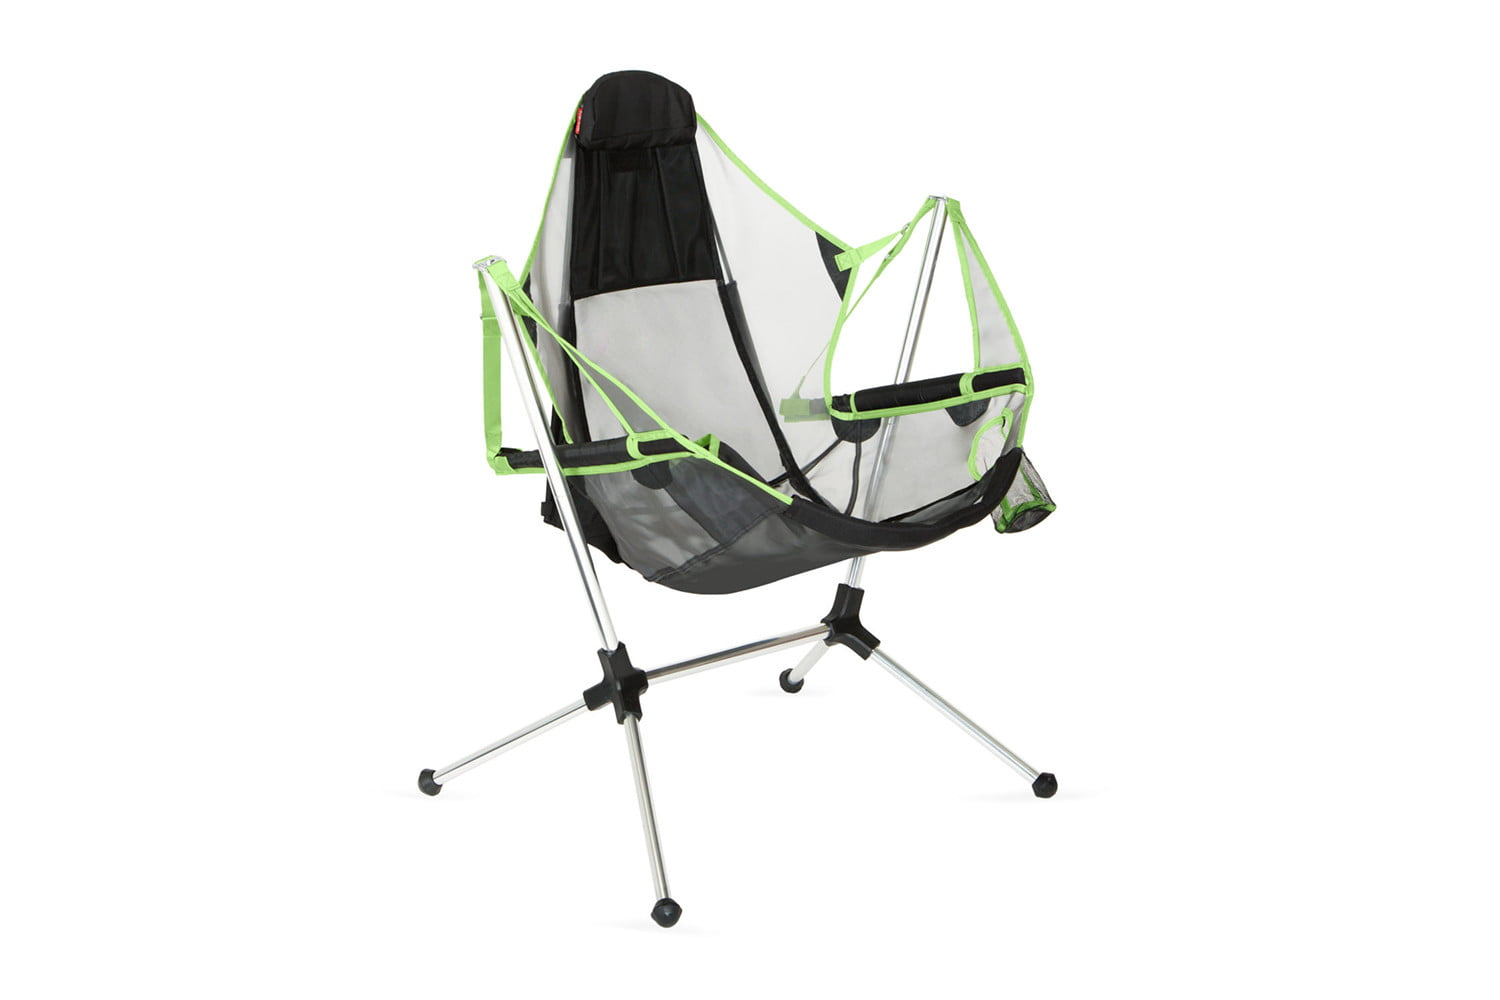 The Best Camping Chairs Digital Trends